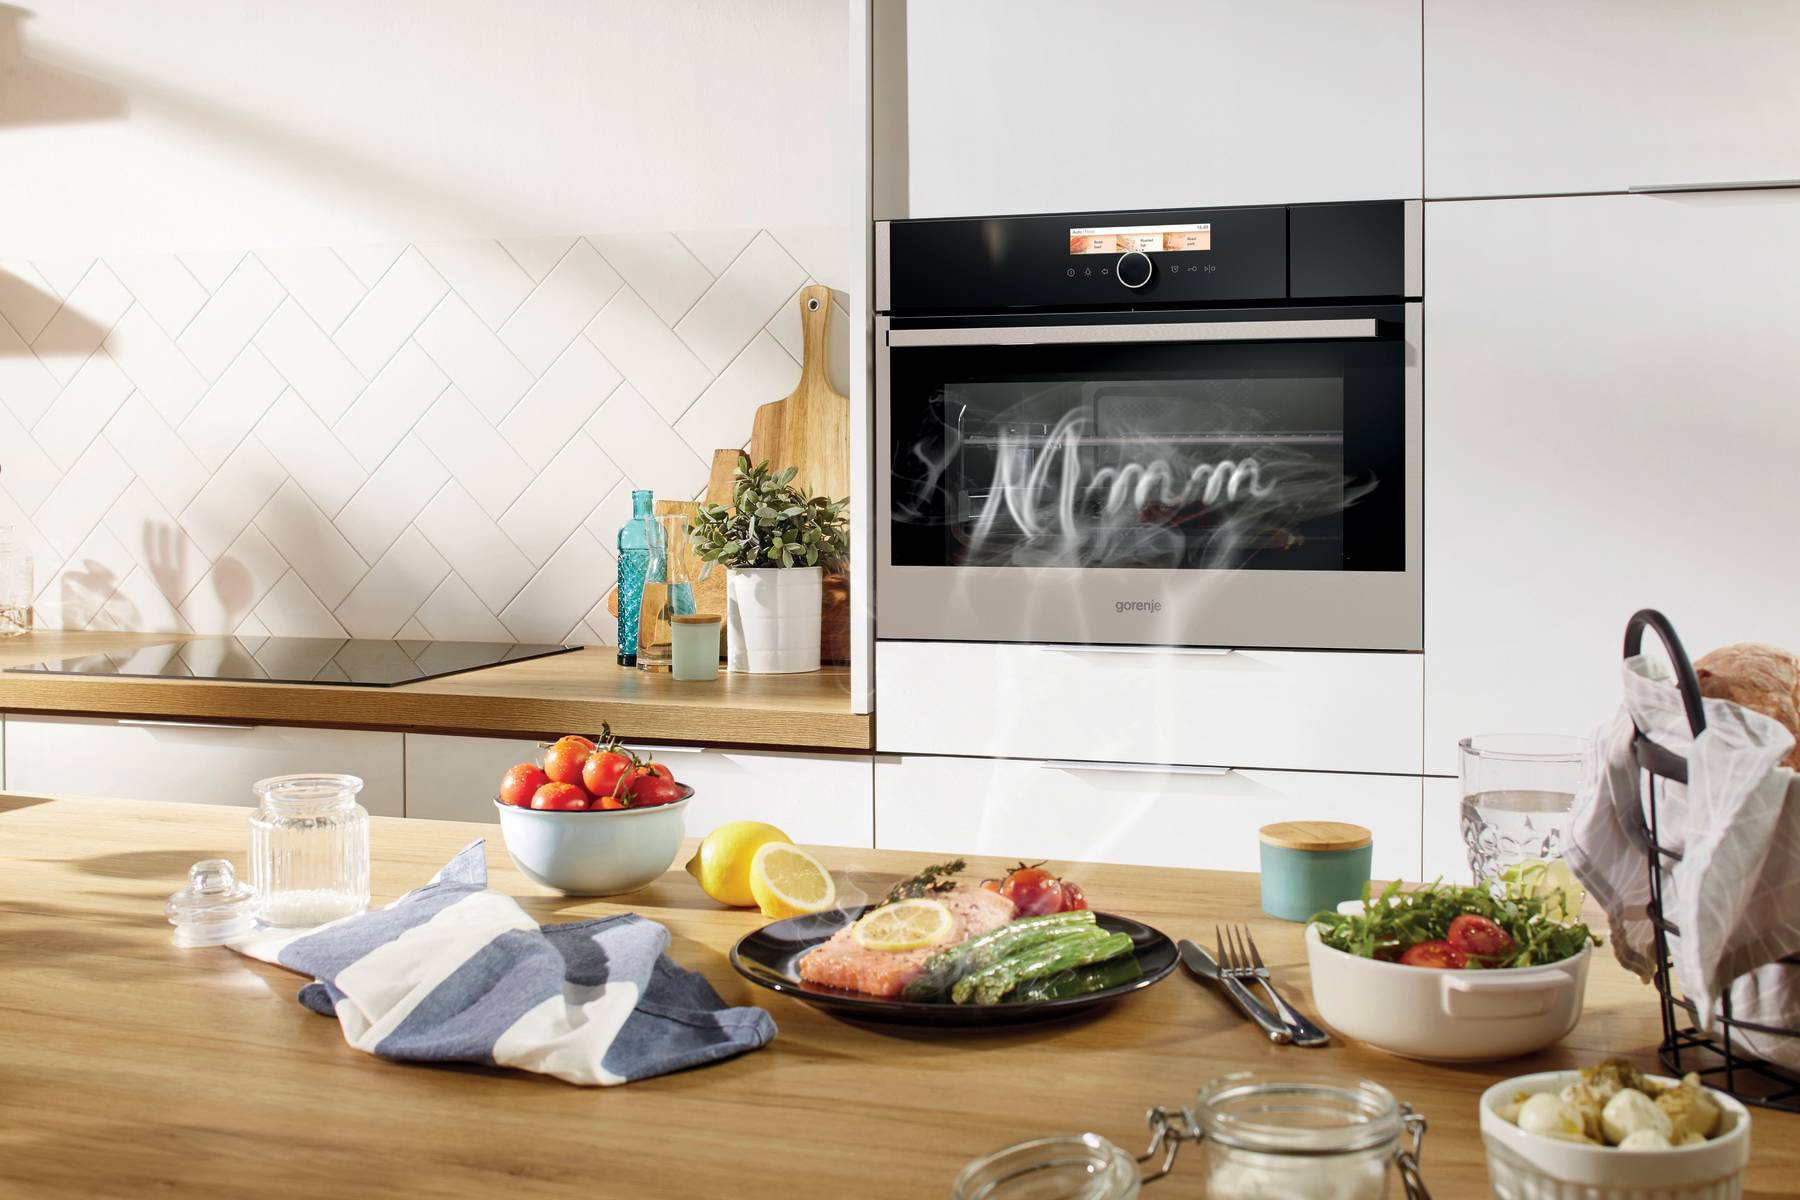 Gorenje Hoover Dryer Wiring Diagram Advanced Cooking Made Simpletake The Guesswork Out Of With Our Procook Displaymore